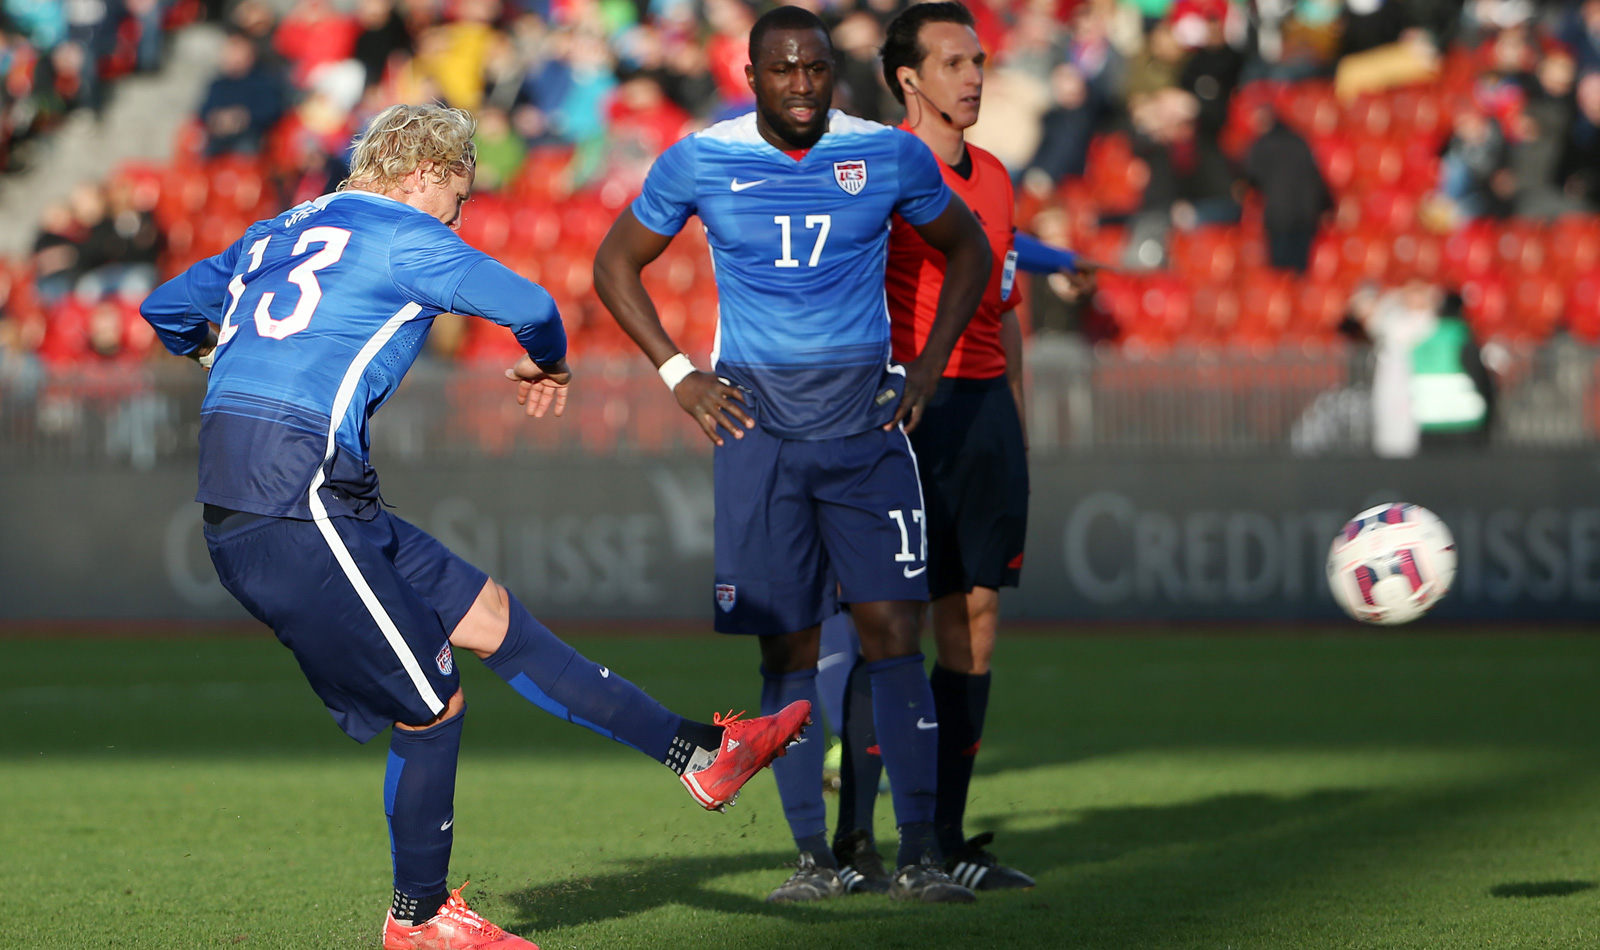 Jozy Altidore watches as Brek Shea hits a perfect free kick to put the USA on the board against Switzerland. The Americans settled for a 1-1 draw.